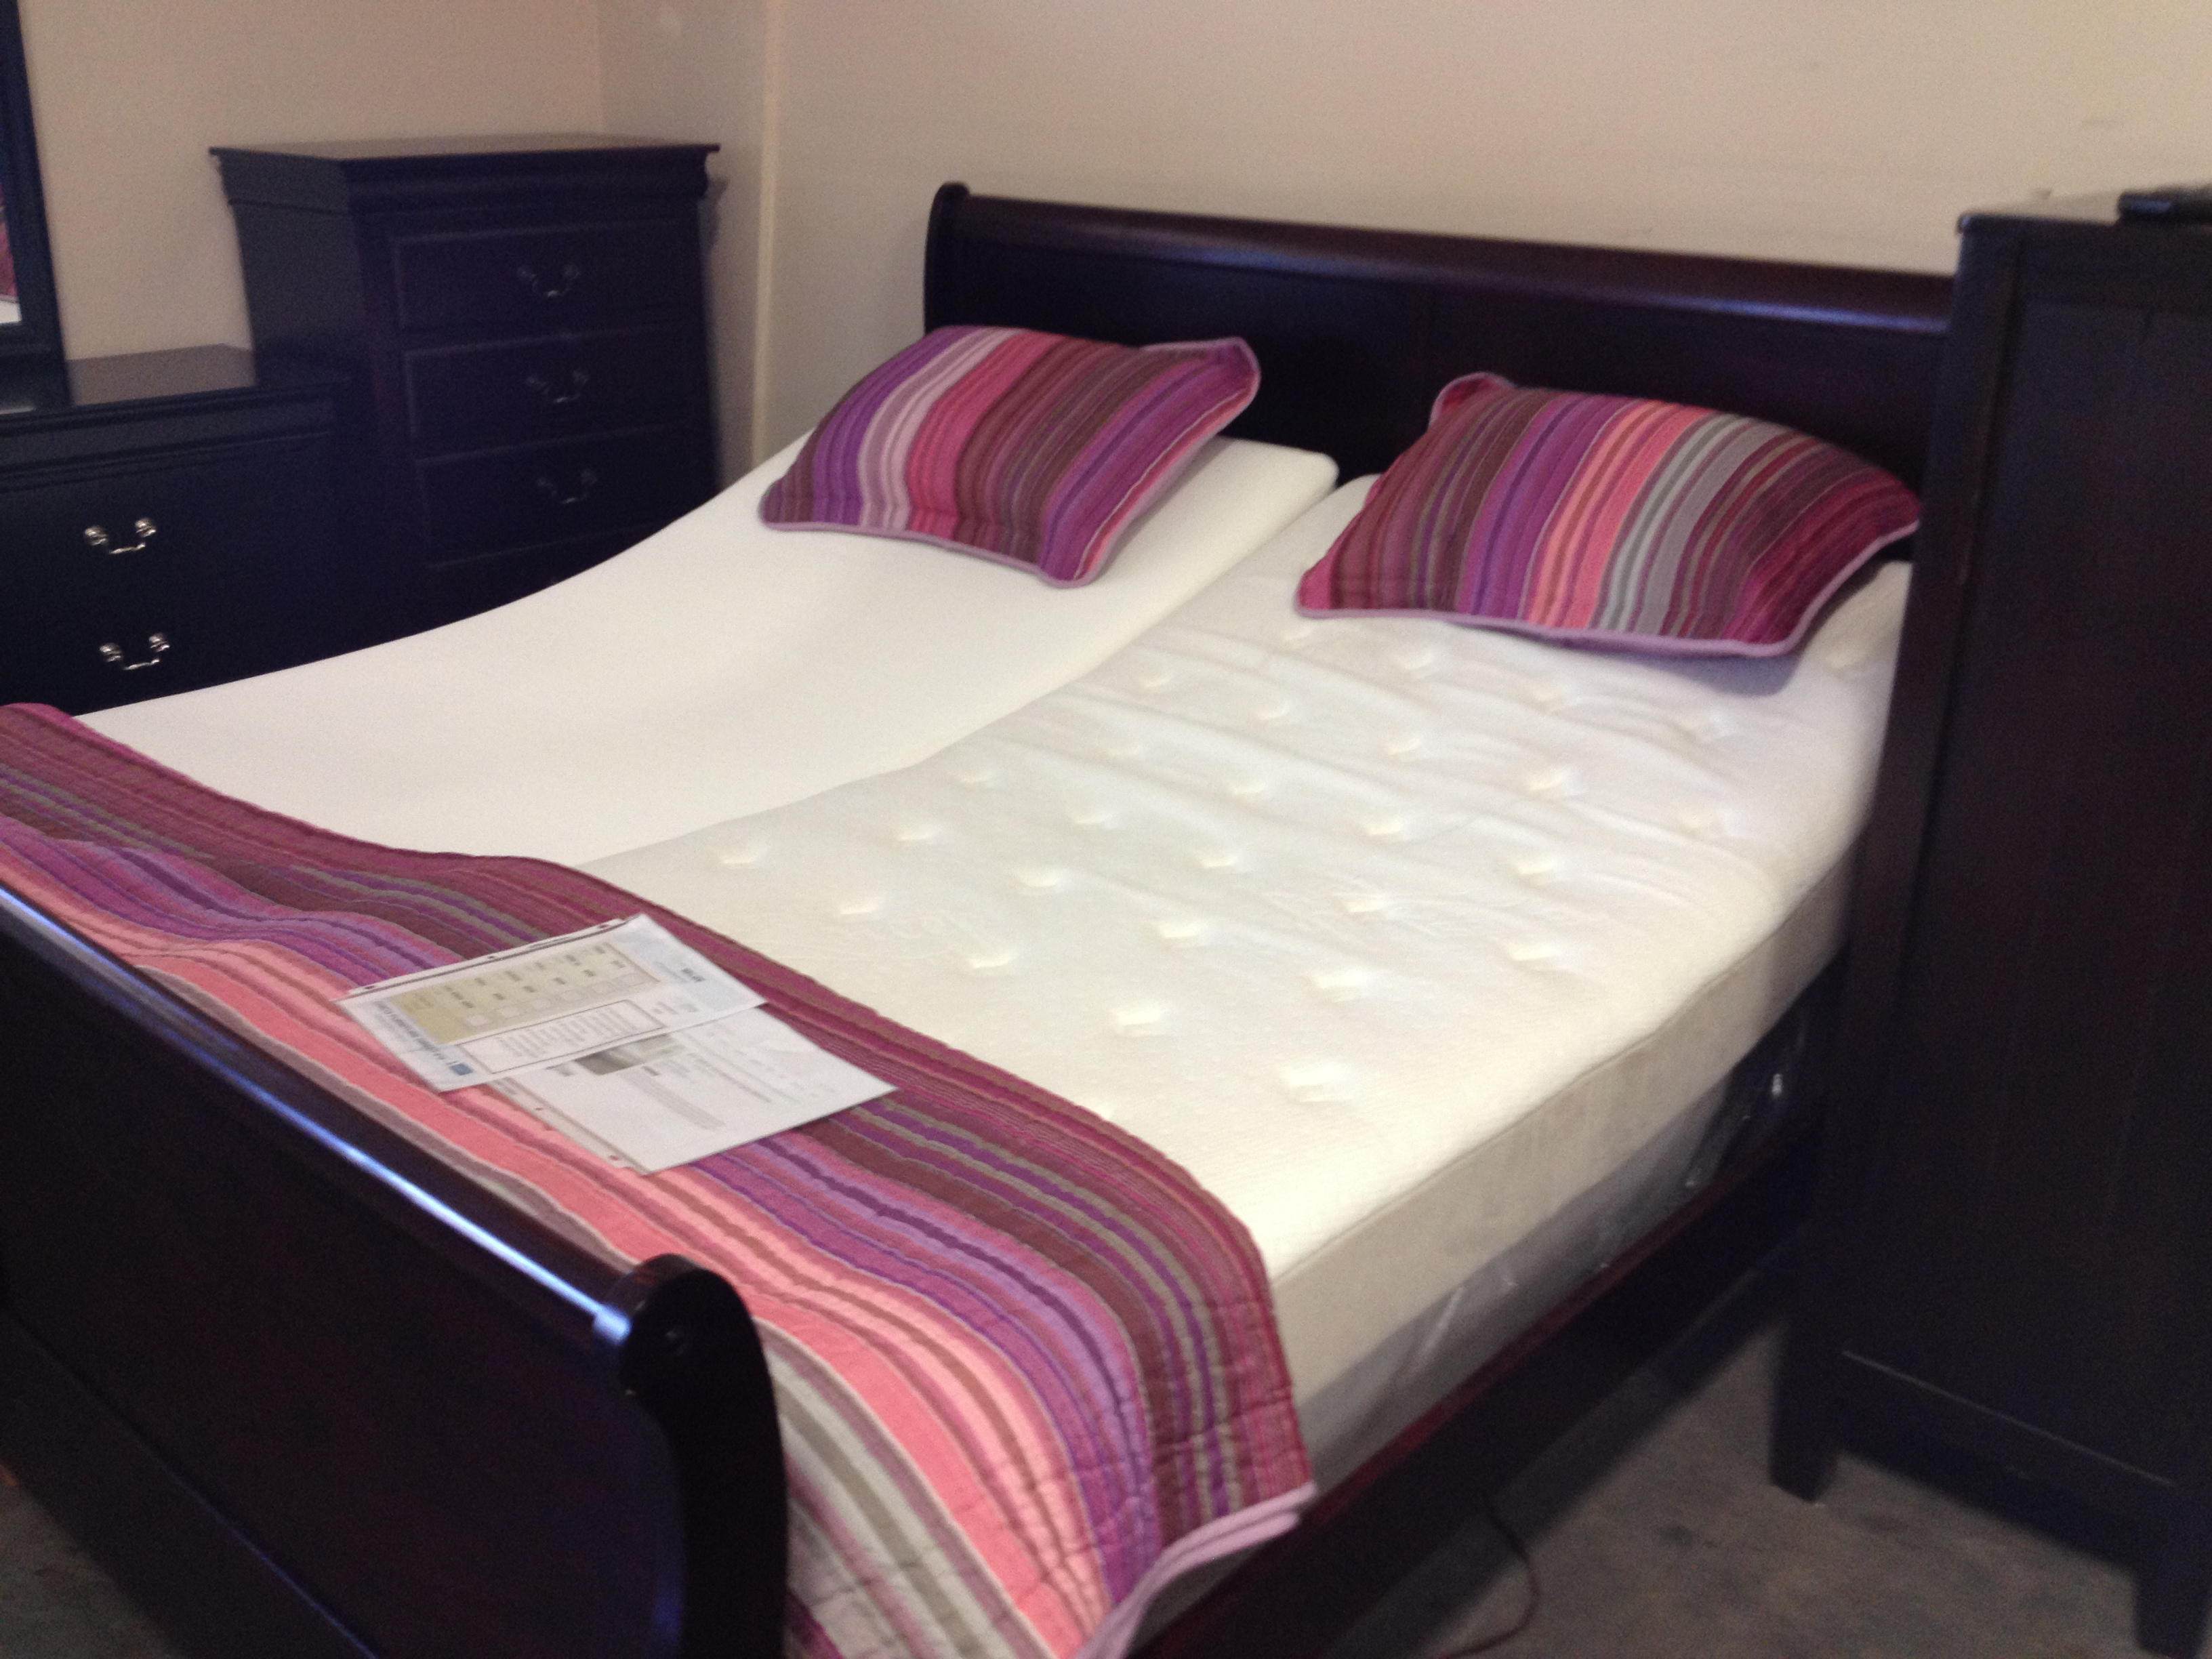 adjustable pro leggett this discount motion platt beds and base bed frames